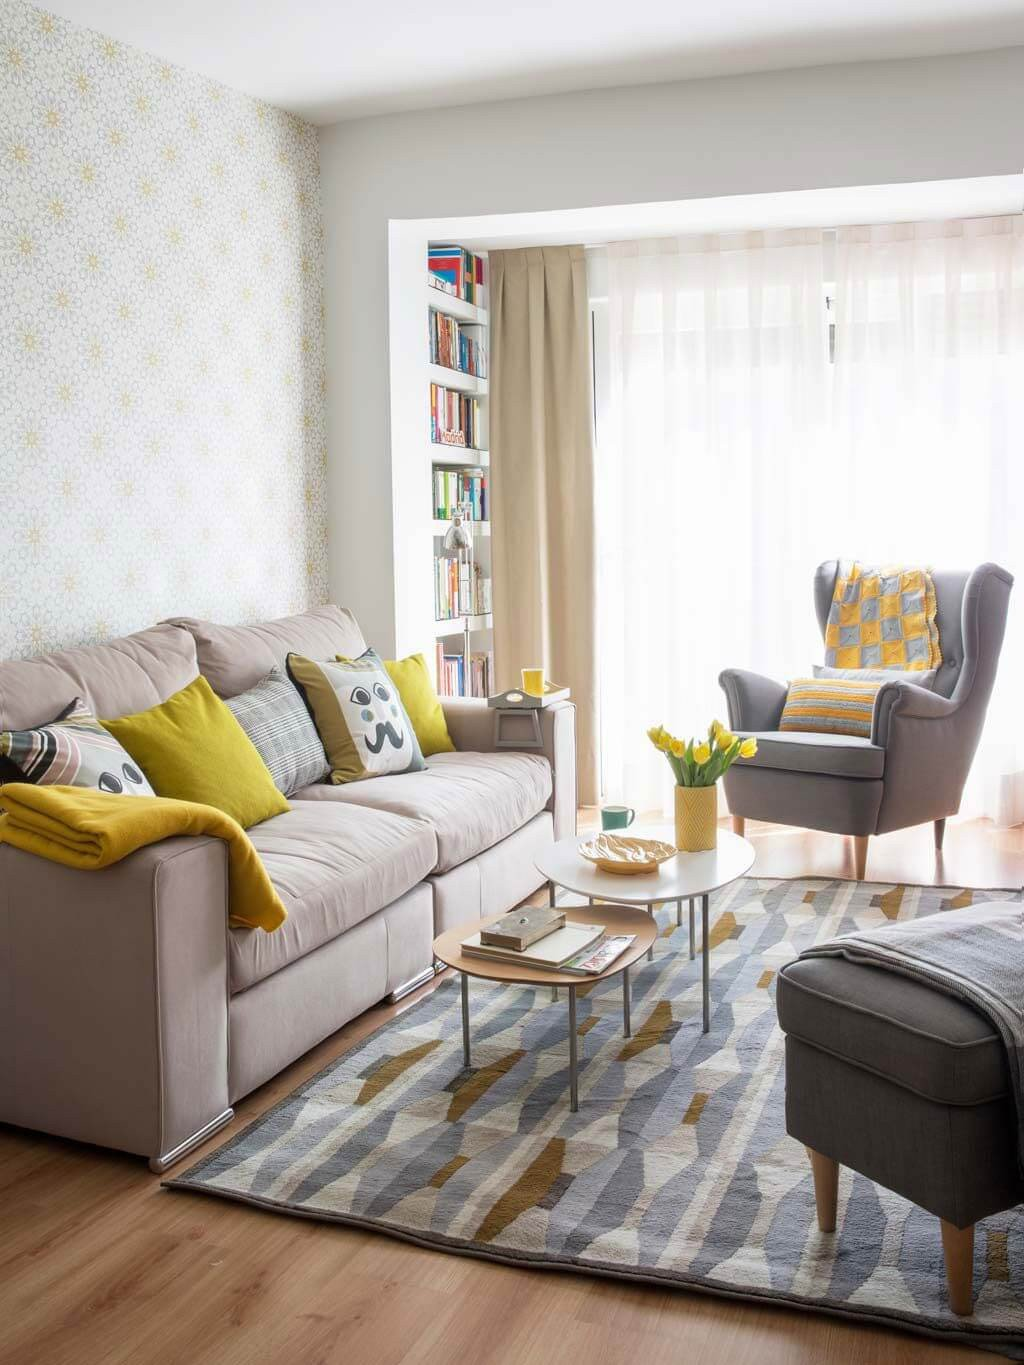 Small Living Room Seating Ideas Lovely 25 Best Small Living Room Decor and Design Ideas for 2019